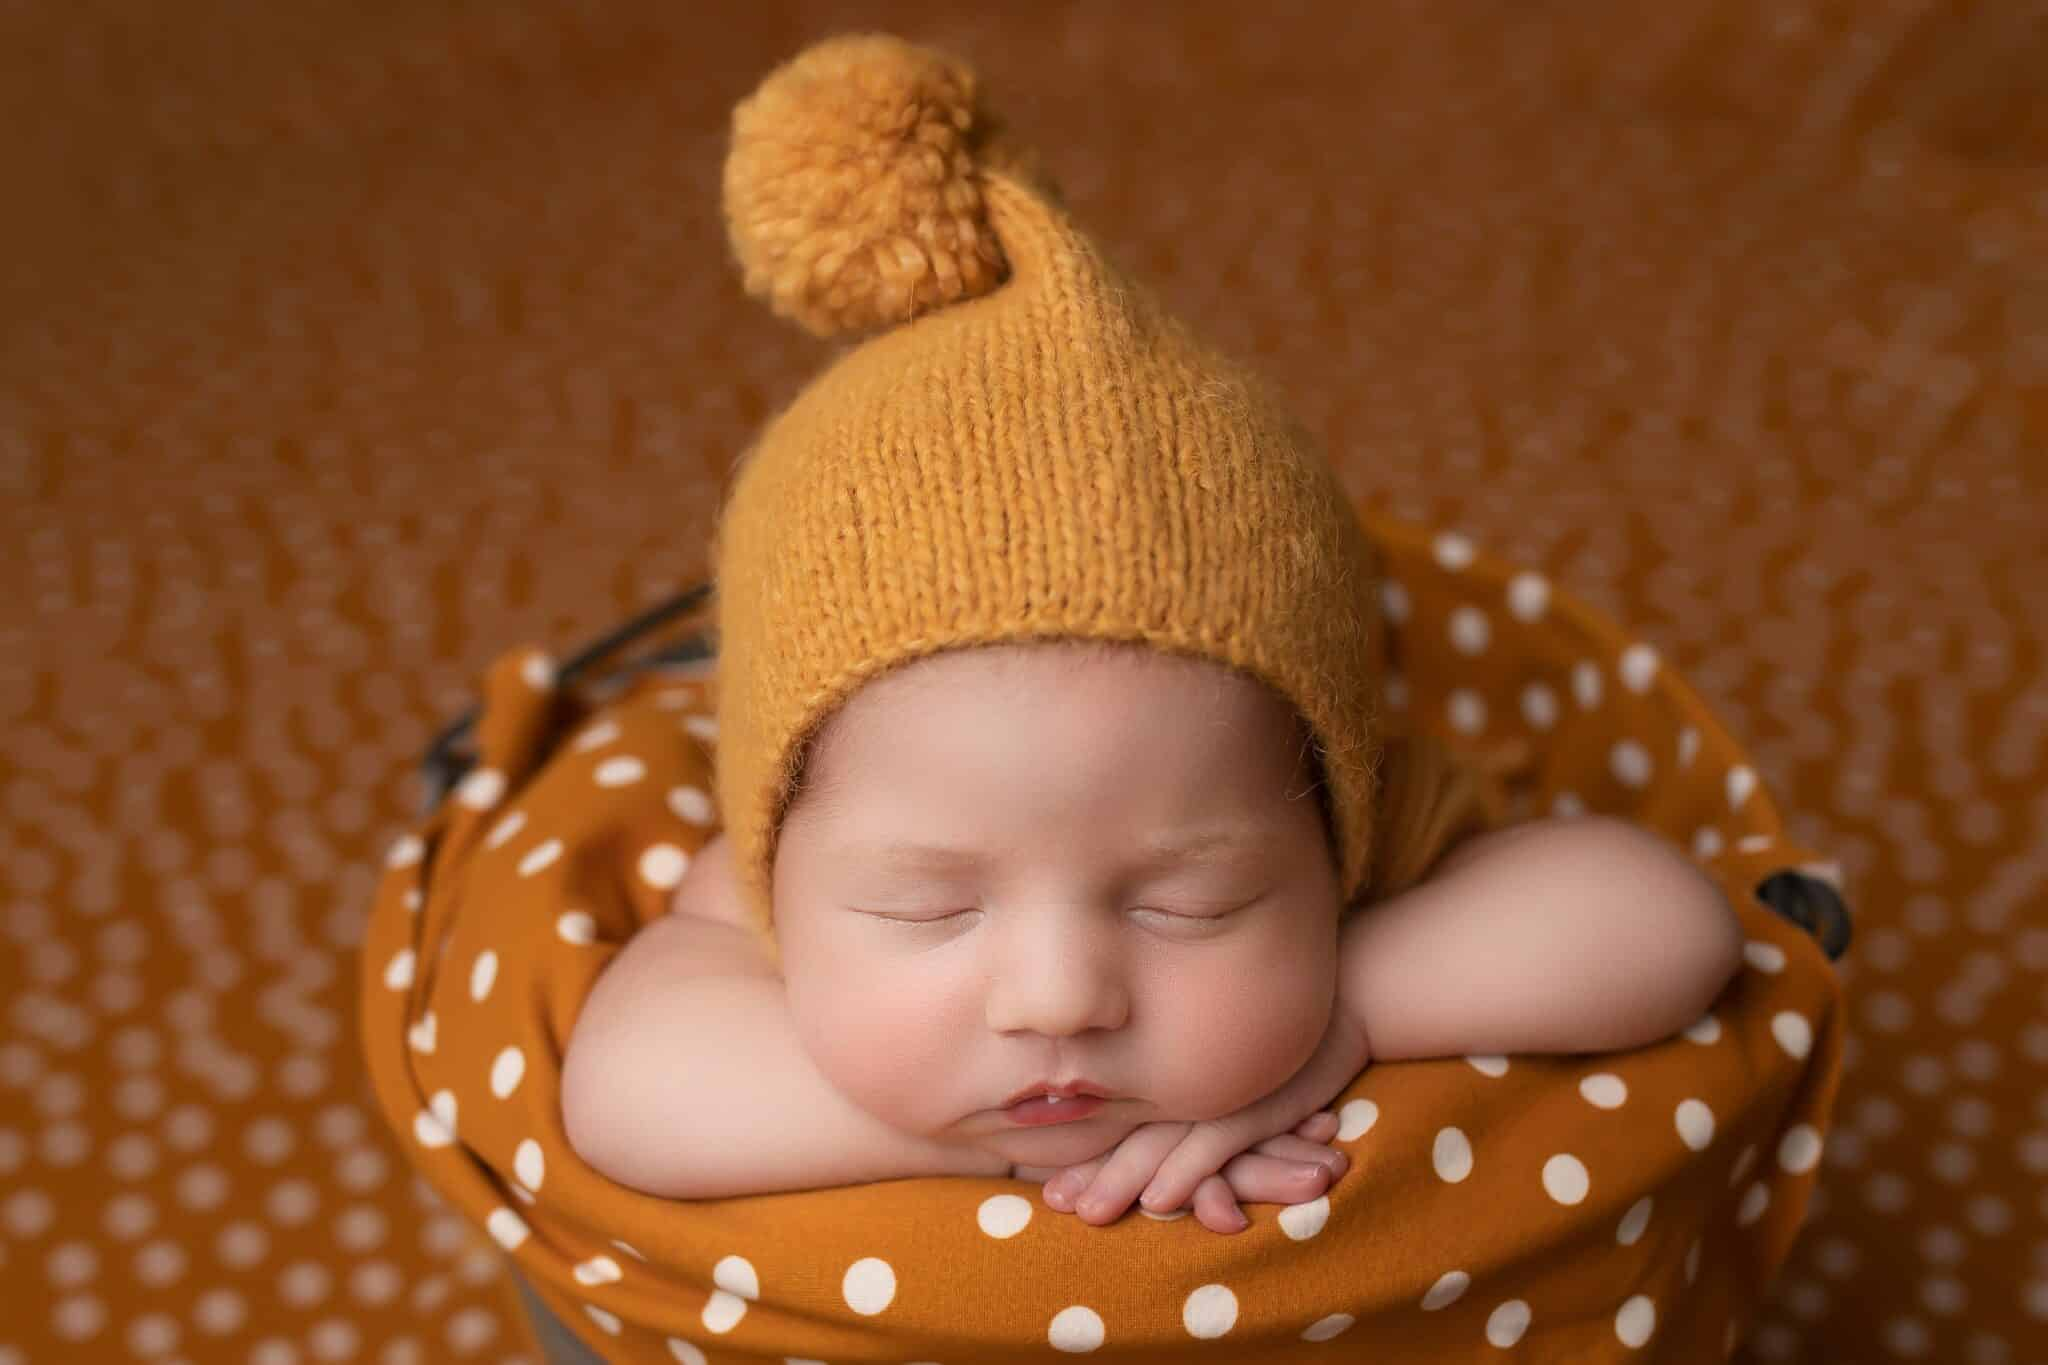 Yellow pom pom hats are simply adorable.